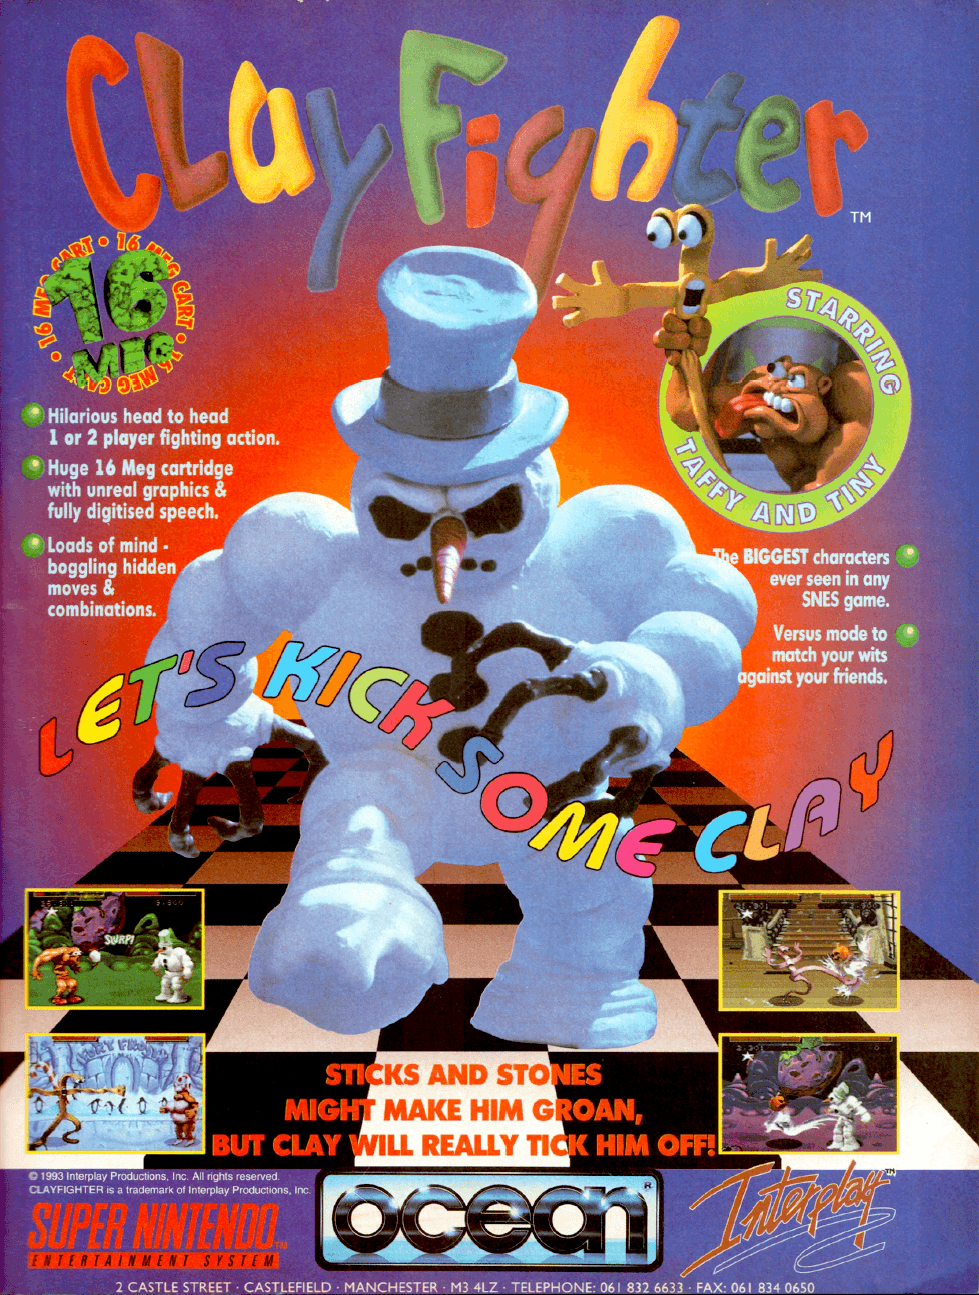 """Clay Fighter is a 2D fighting game released in which the characters, as the name suggests, are made completely out of clay. This allows for interesting moves and stylized graphics. The zany roster includes: Bad Mr. Frosty, a snowman; Taffy, a piece of stretchable candy; Blob, a character who can morph into different shapes; Blue Suede Goo, an Elvis knock-off; Ickybod Clay, a pumpkin-headed ghost; Helga, an opera singer; and Bonker, the crazed clown. Each character also has their own level  and individual taunts.  The game was one of the two """"clay"""" themed game franchises made by  Interplay Productions, the second being a platformer released for the  SNES titled Claymates."""